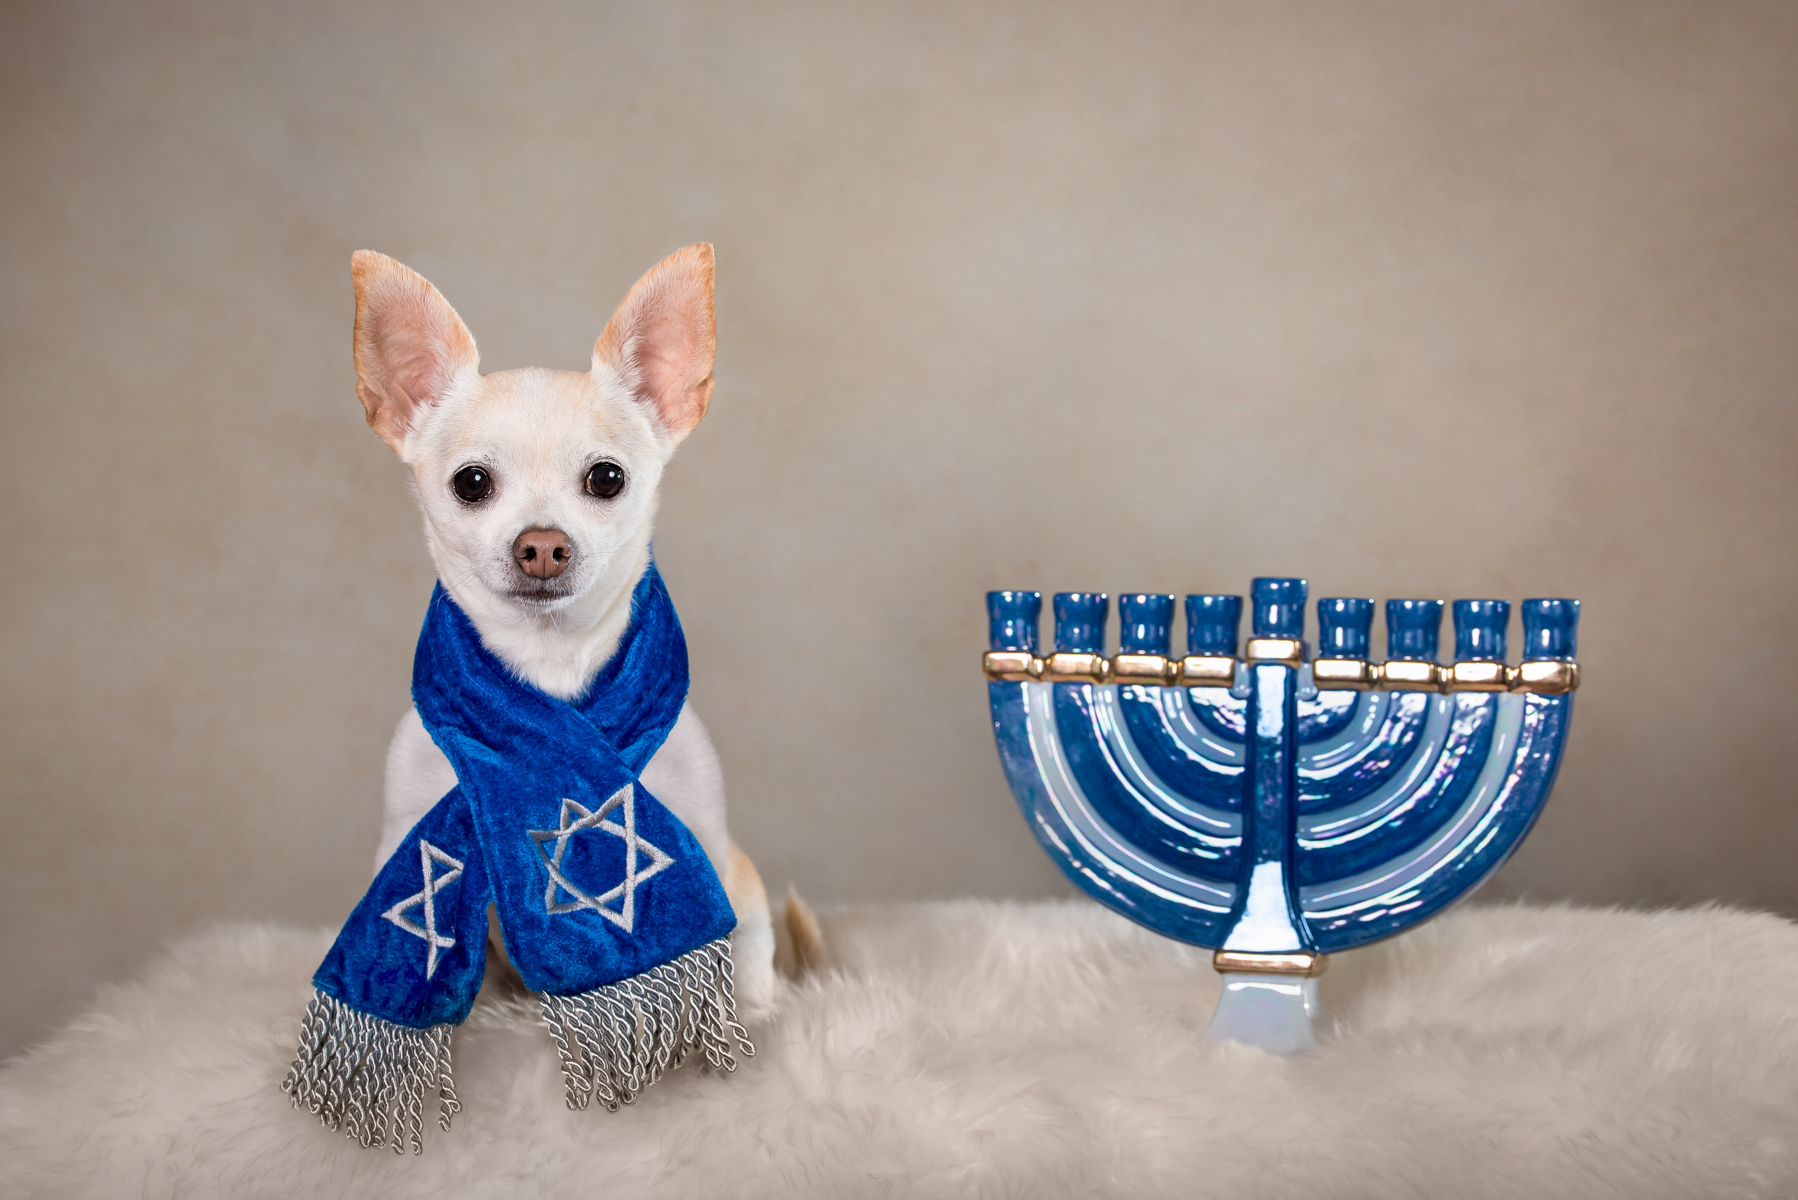 Hanukkah Pet Portraits from Vasi Studios